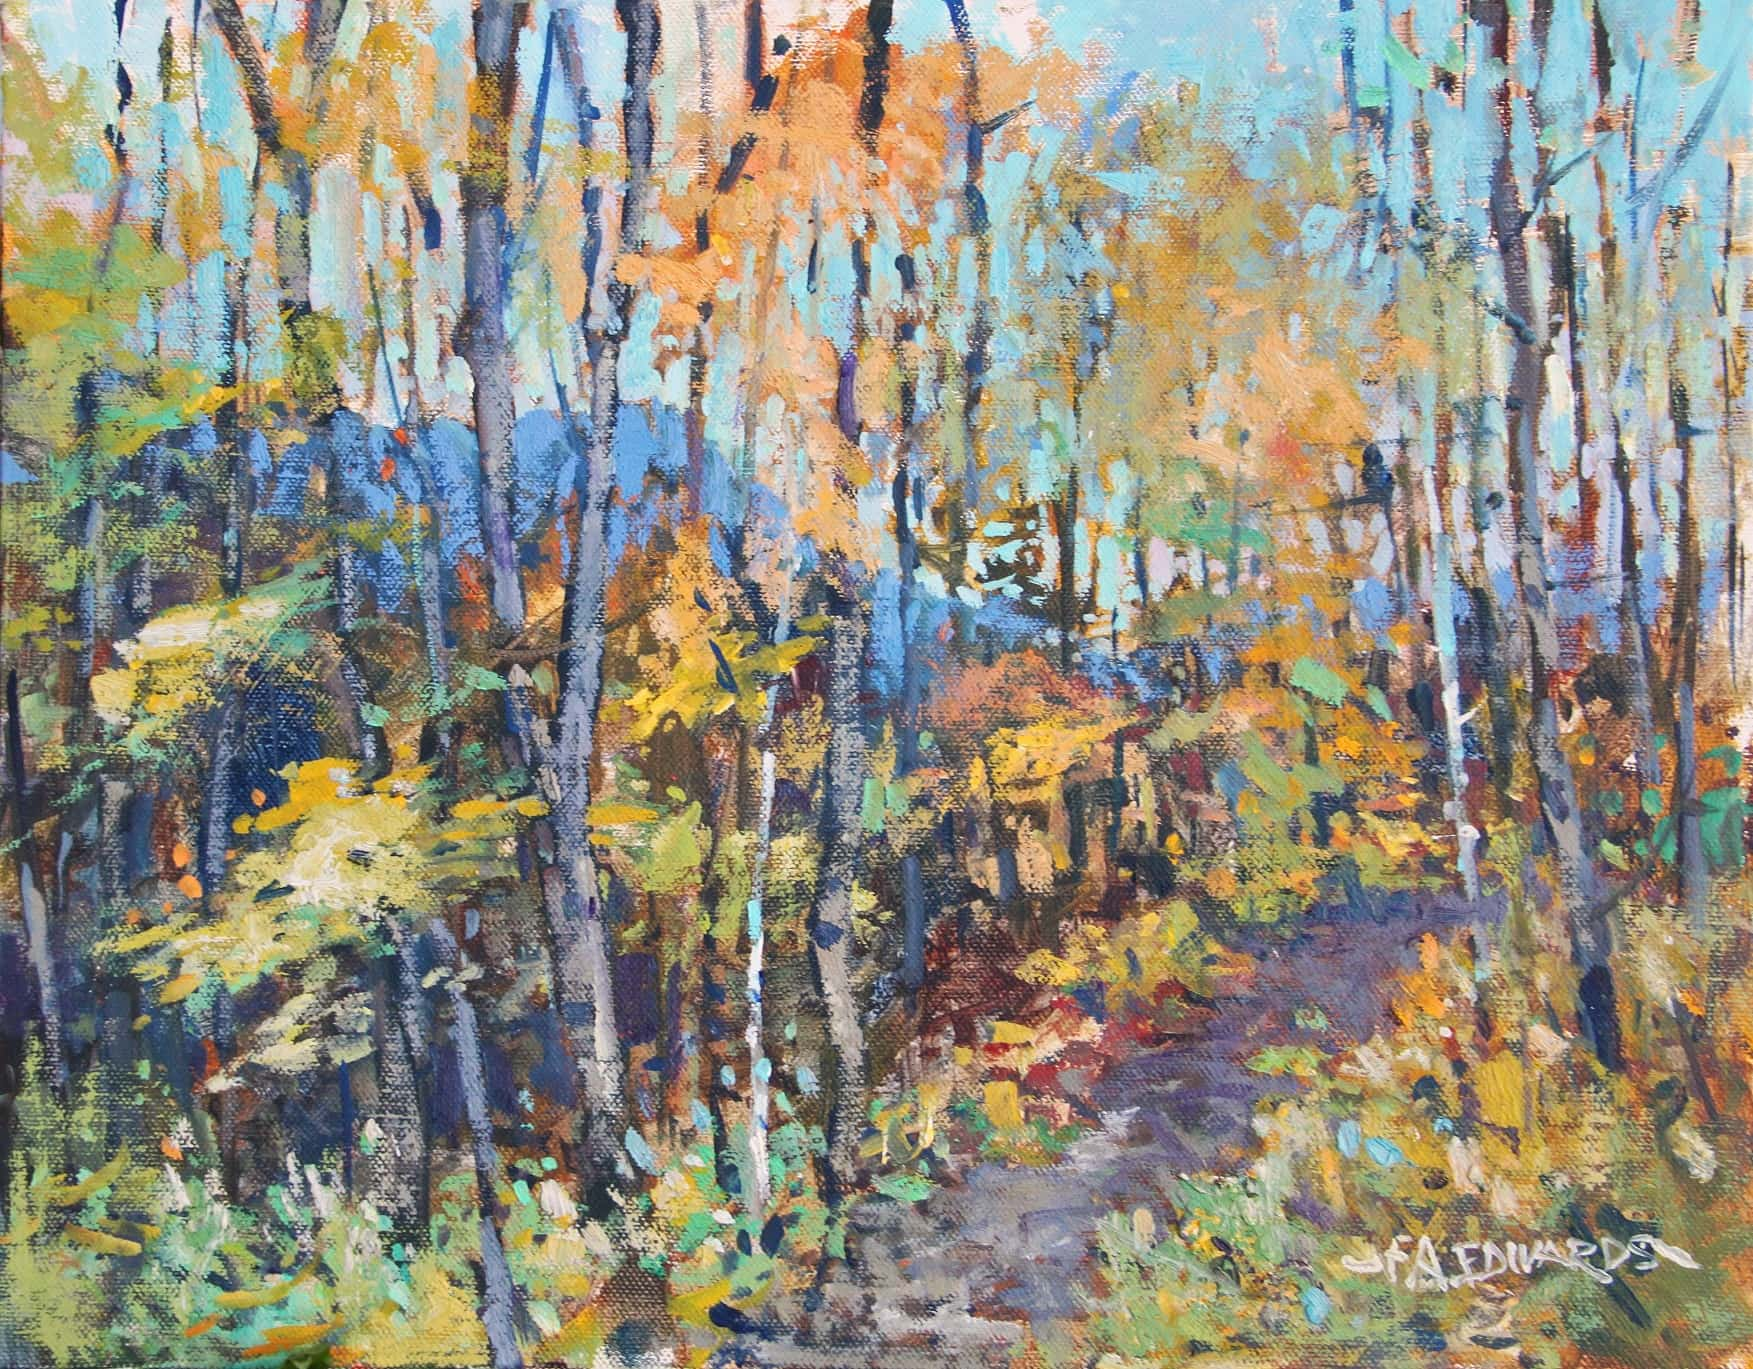 Frank Edwards -- Woodland Autumn